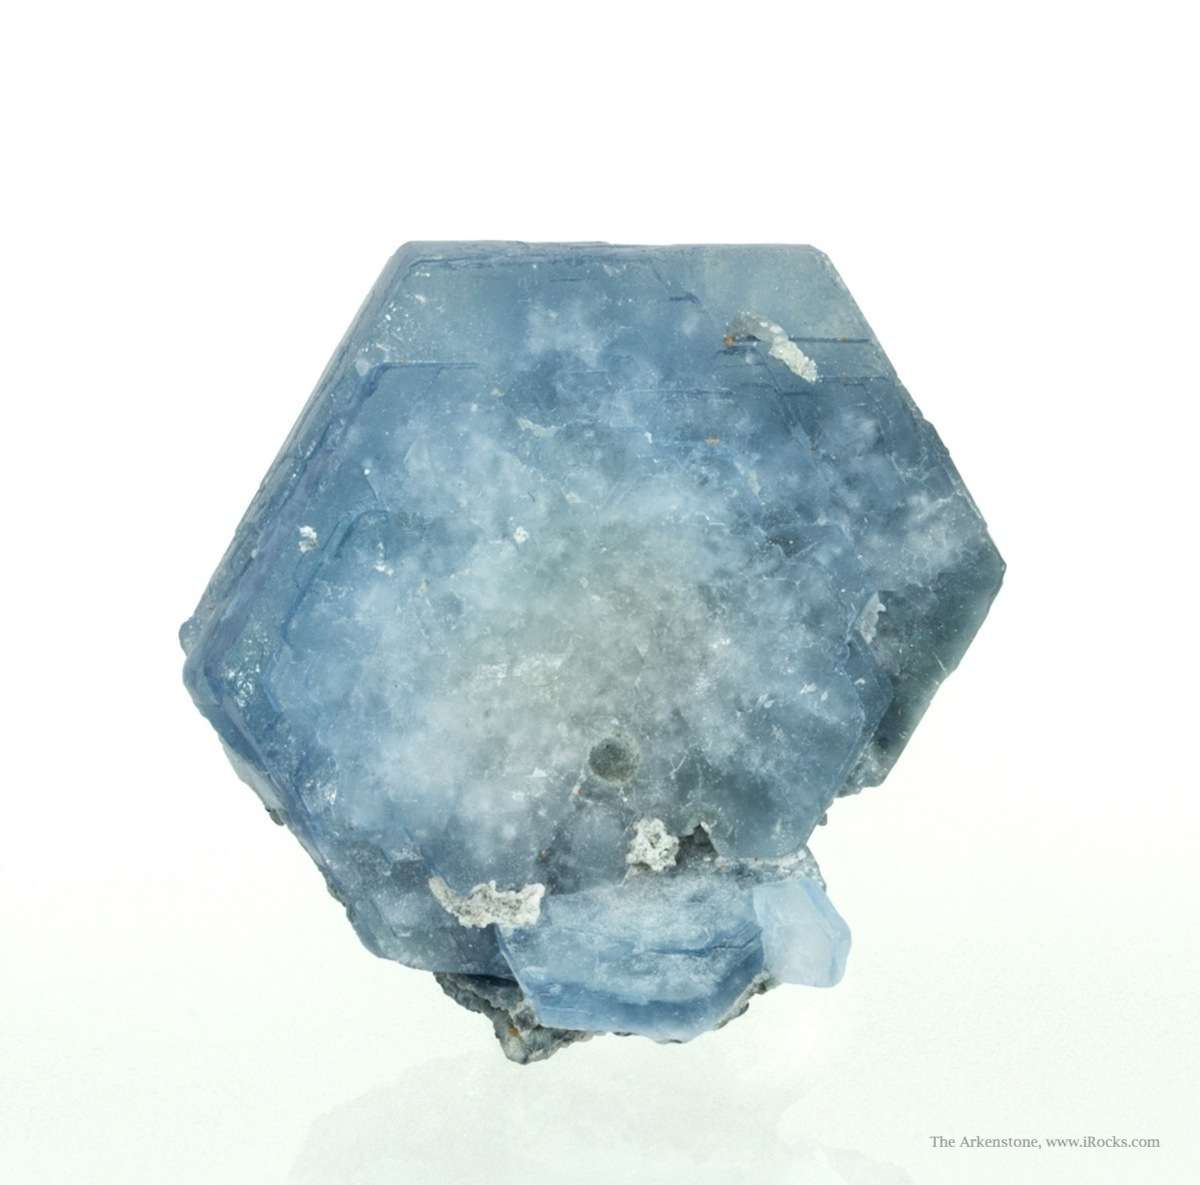 This dramatic crystal large tabular doubly terminated lustrous